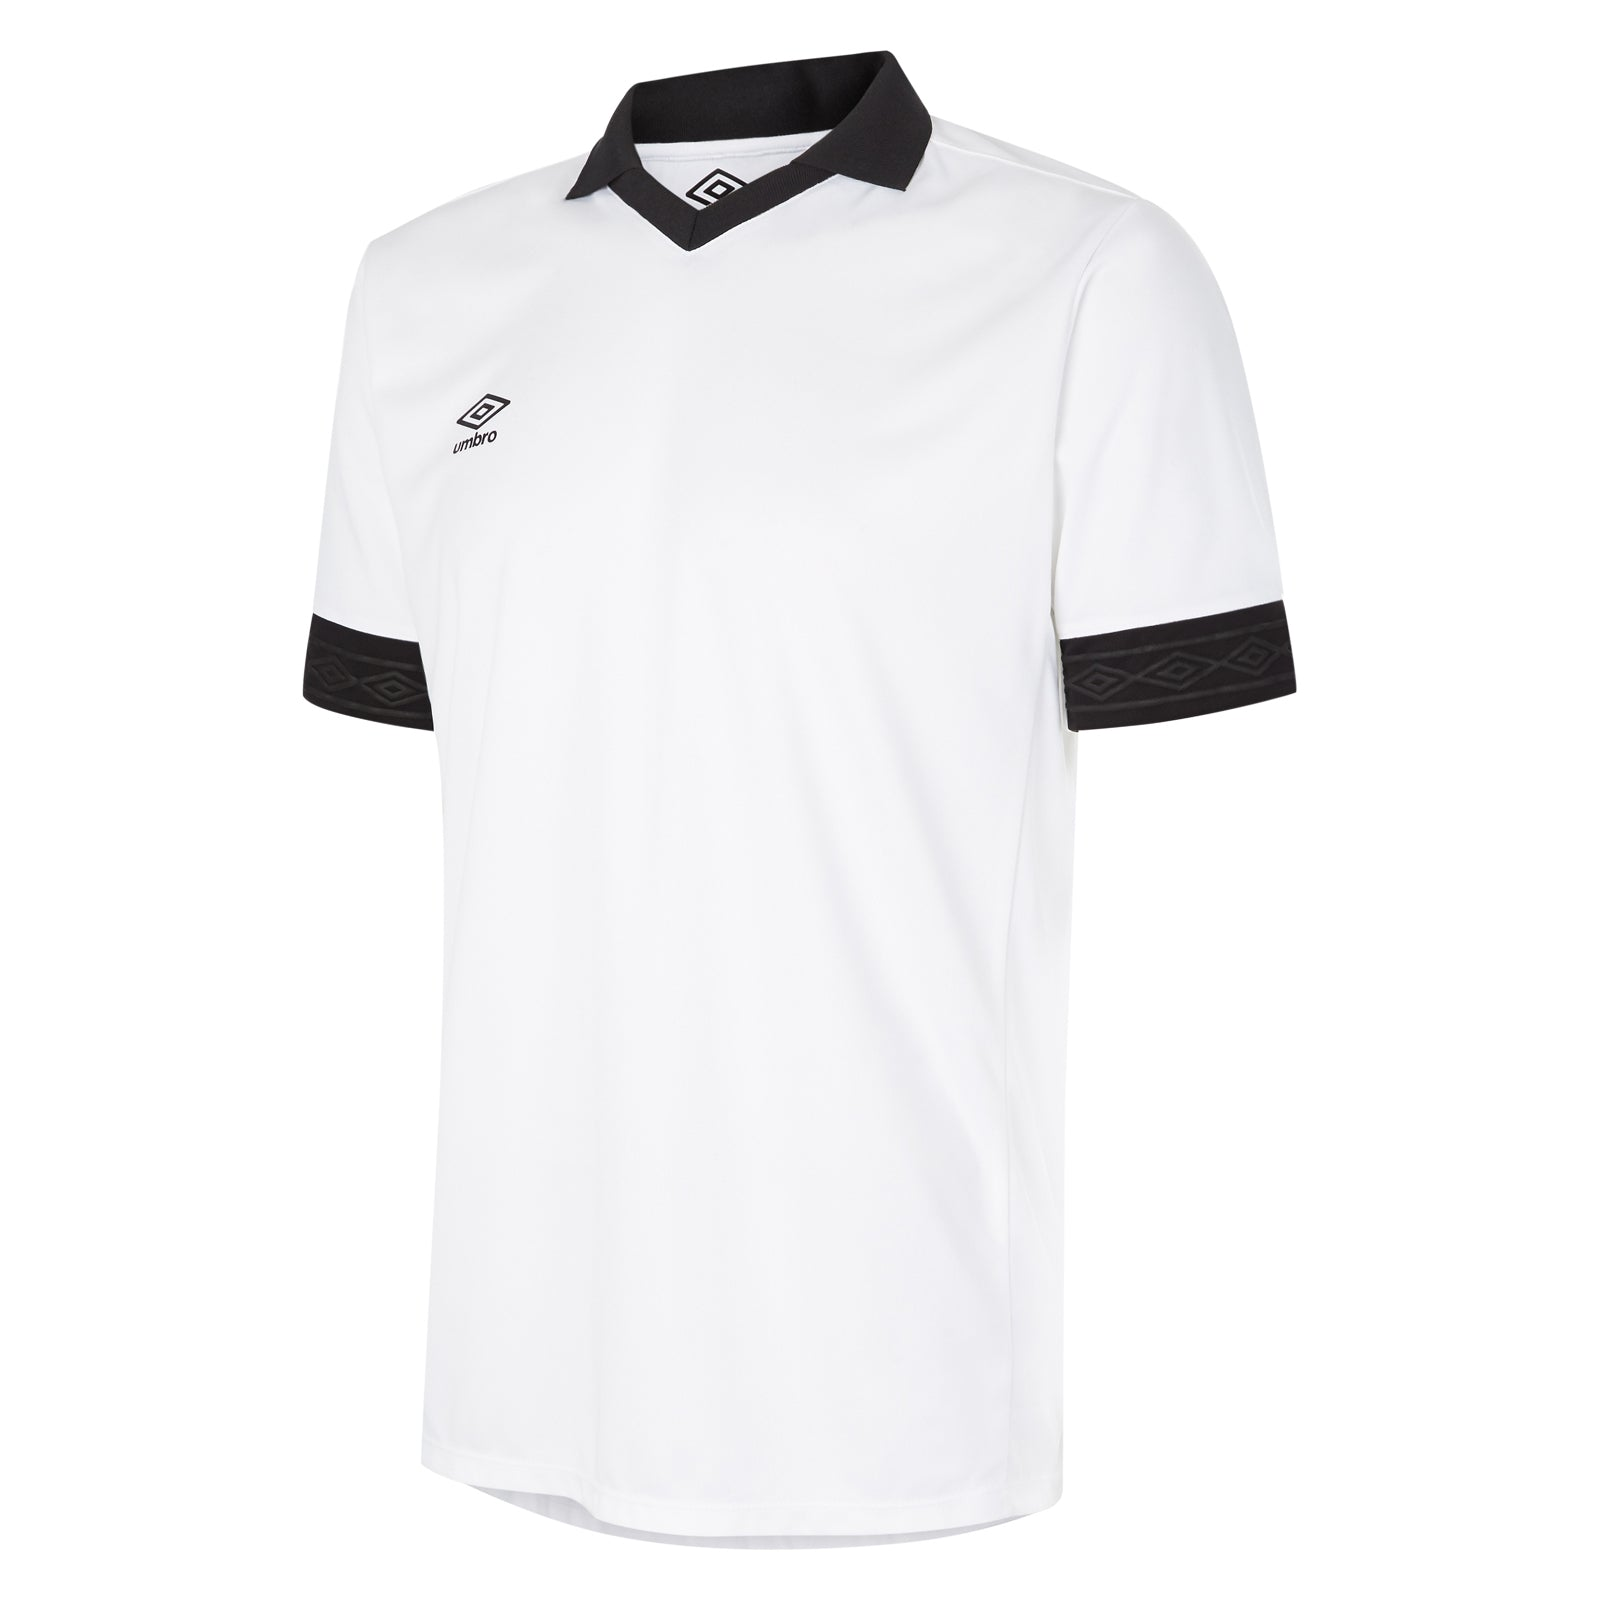 Umbro Tempest jersey short sleeve in white with contrast black collar and cuff